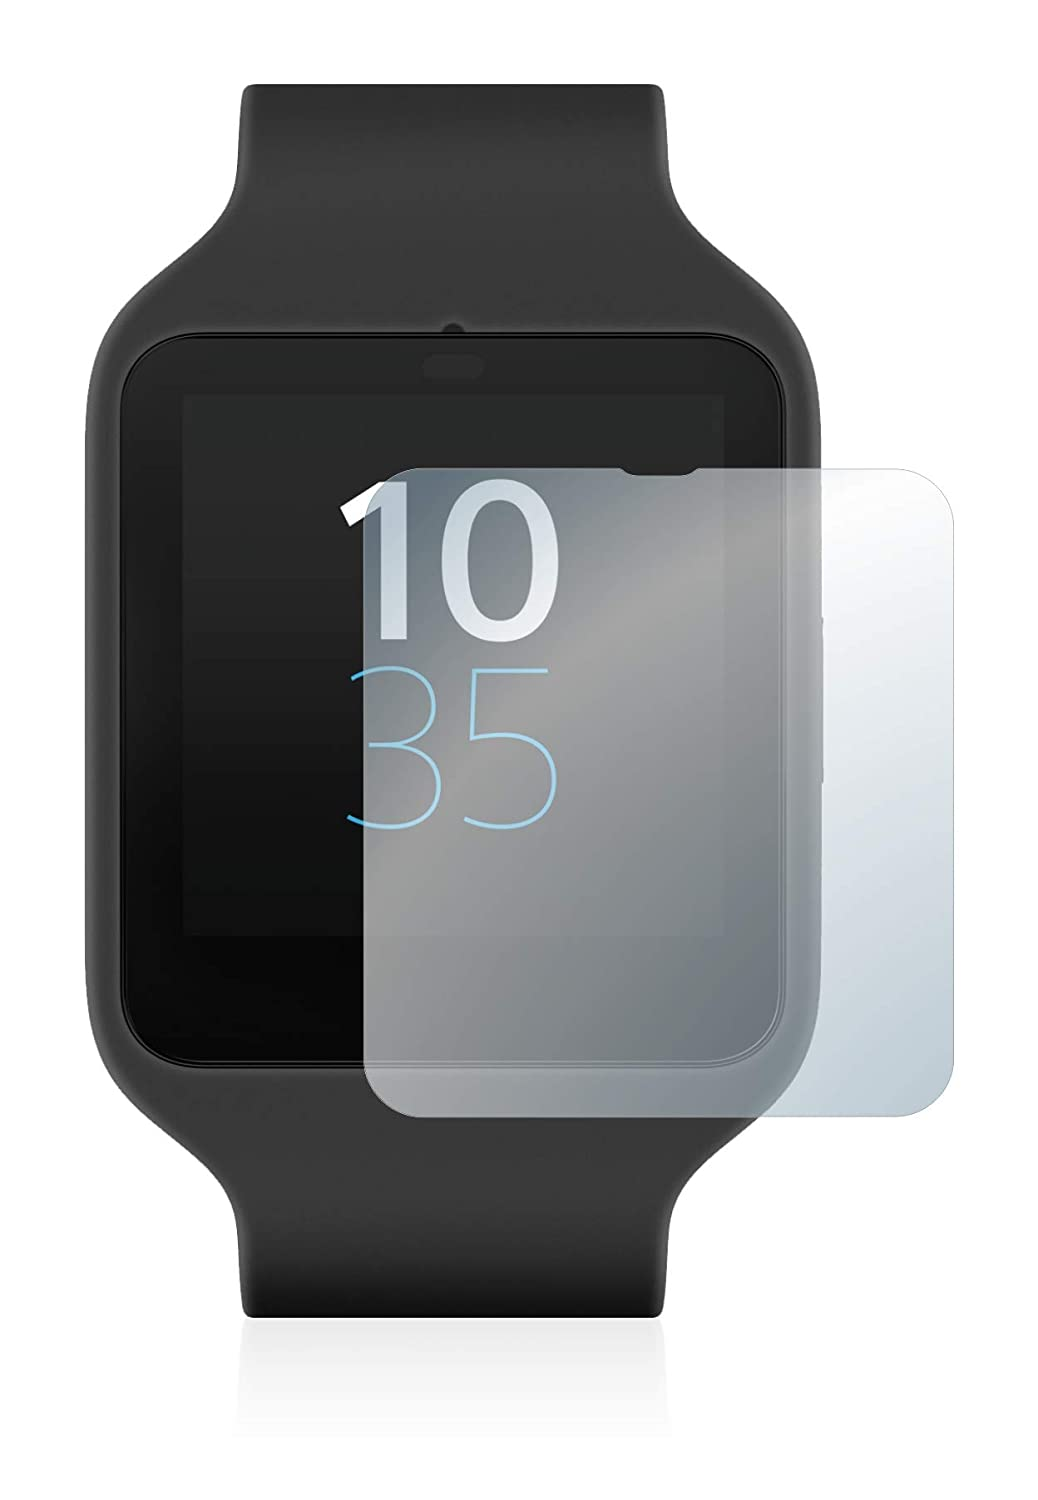 BROTECT Protection Ecran Verre pour Sony Smartwatch 3 SWR50: Amazon.fr: High-tech